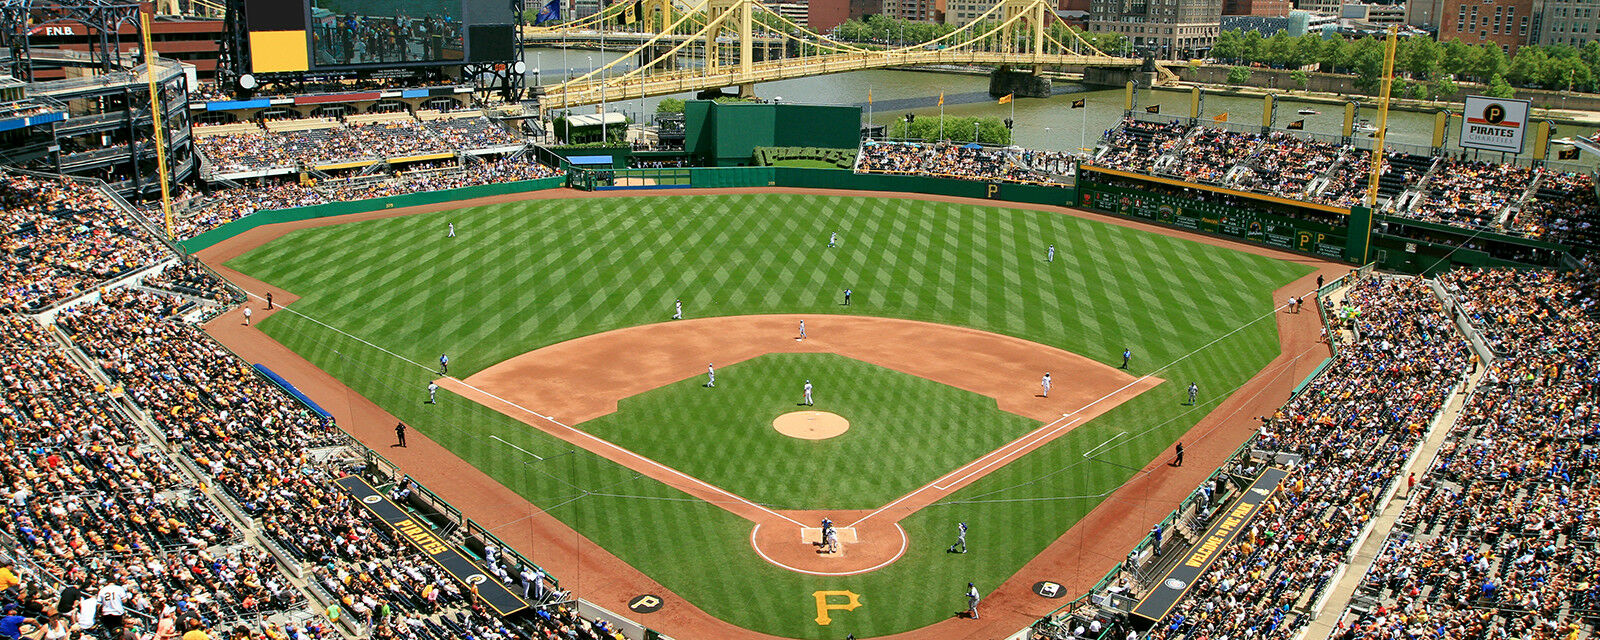 Boston Red Sox at Pittsburgh Pirates Spring Training